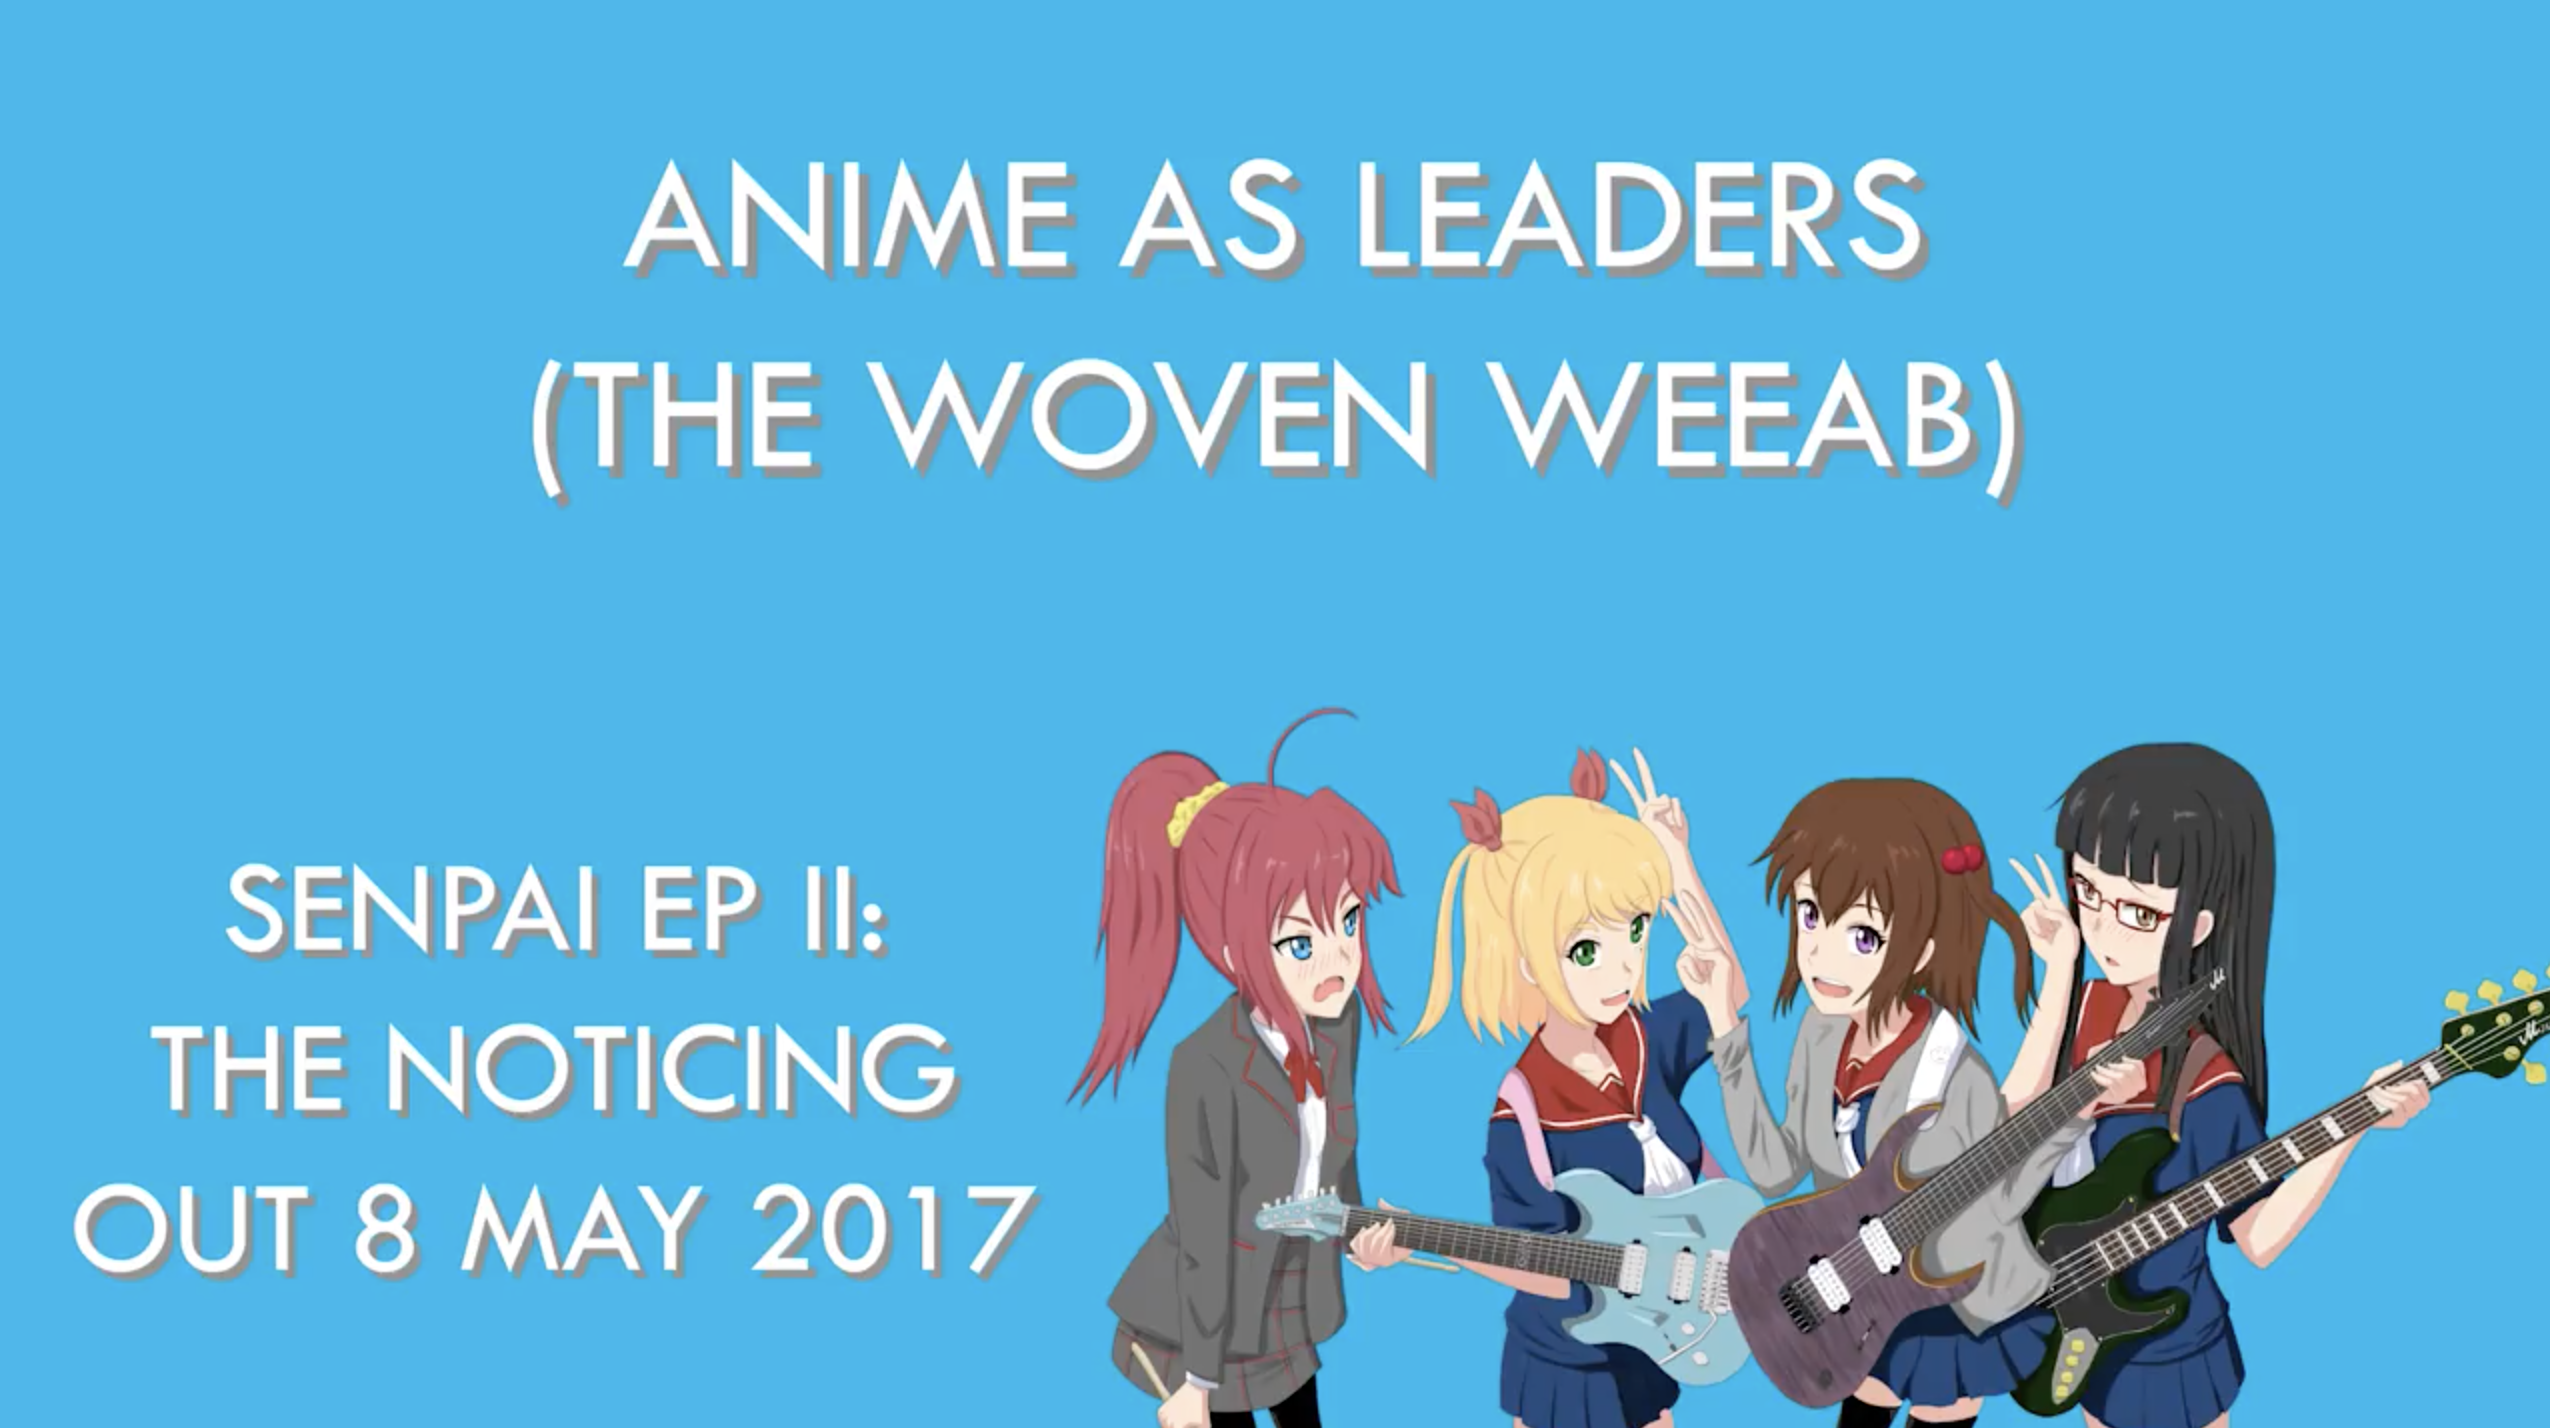 Sithu Aye Premieres New Song 'Anime as Leaders (The Woven Weeab)'